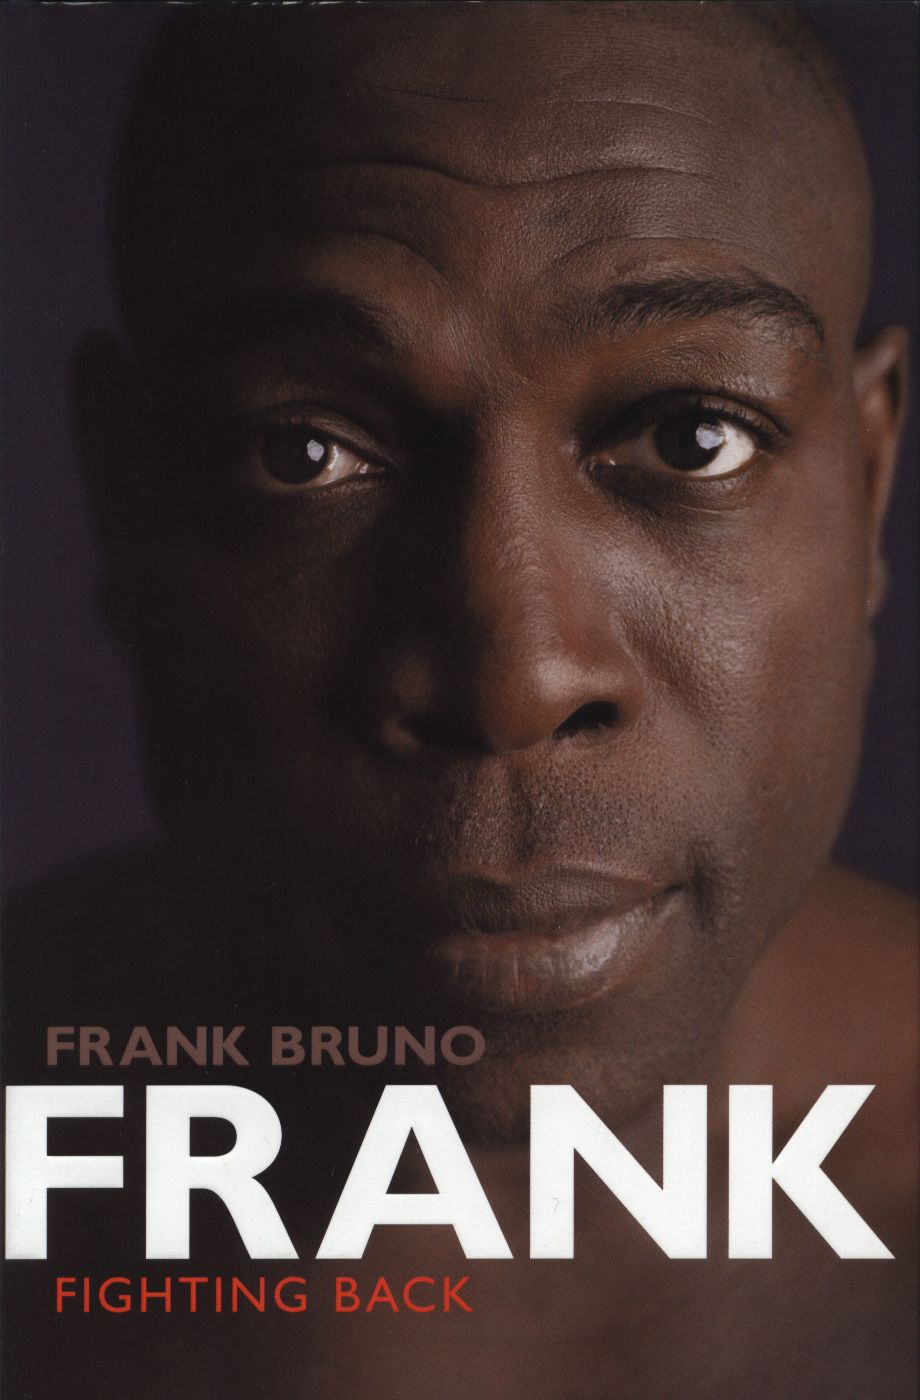 Hammersmith, London, England, UK, 1961-11-16, Frank Bruno